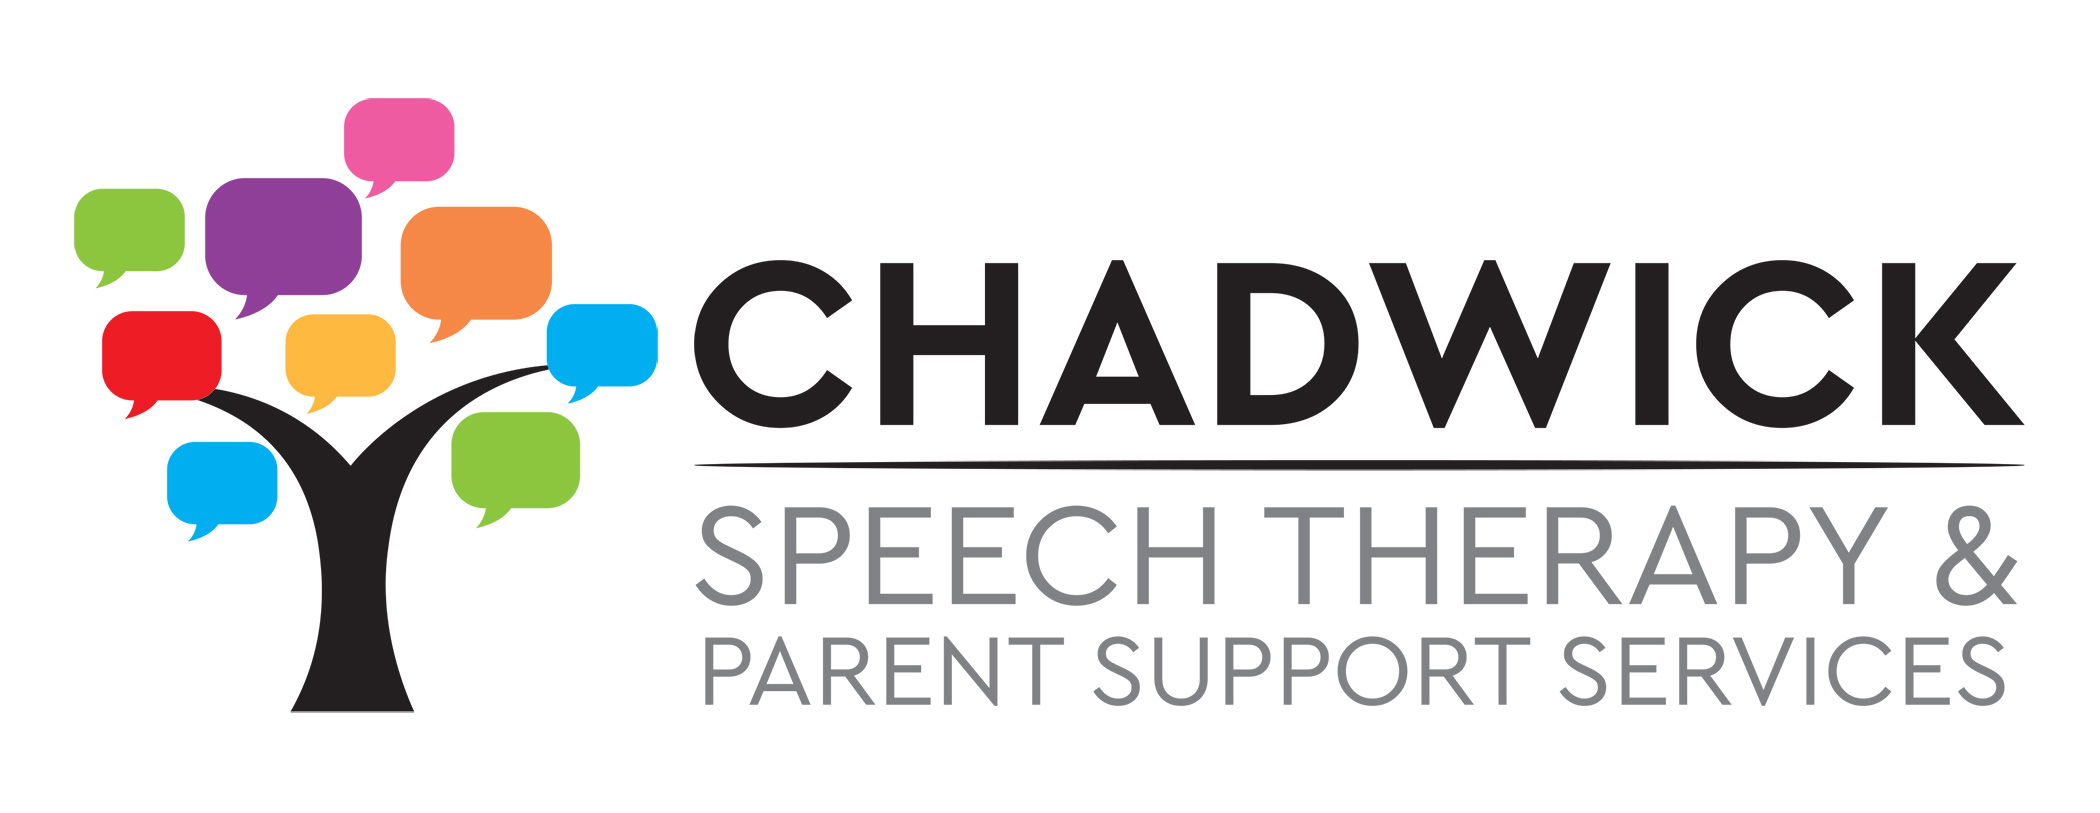 Chadwick-Speech-Therapy-Parent-Support-Services.jpg